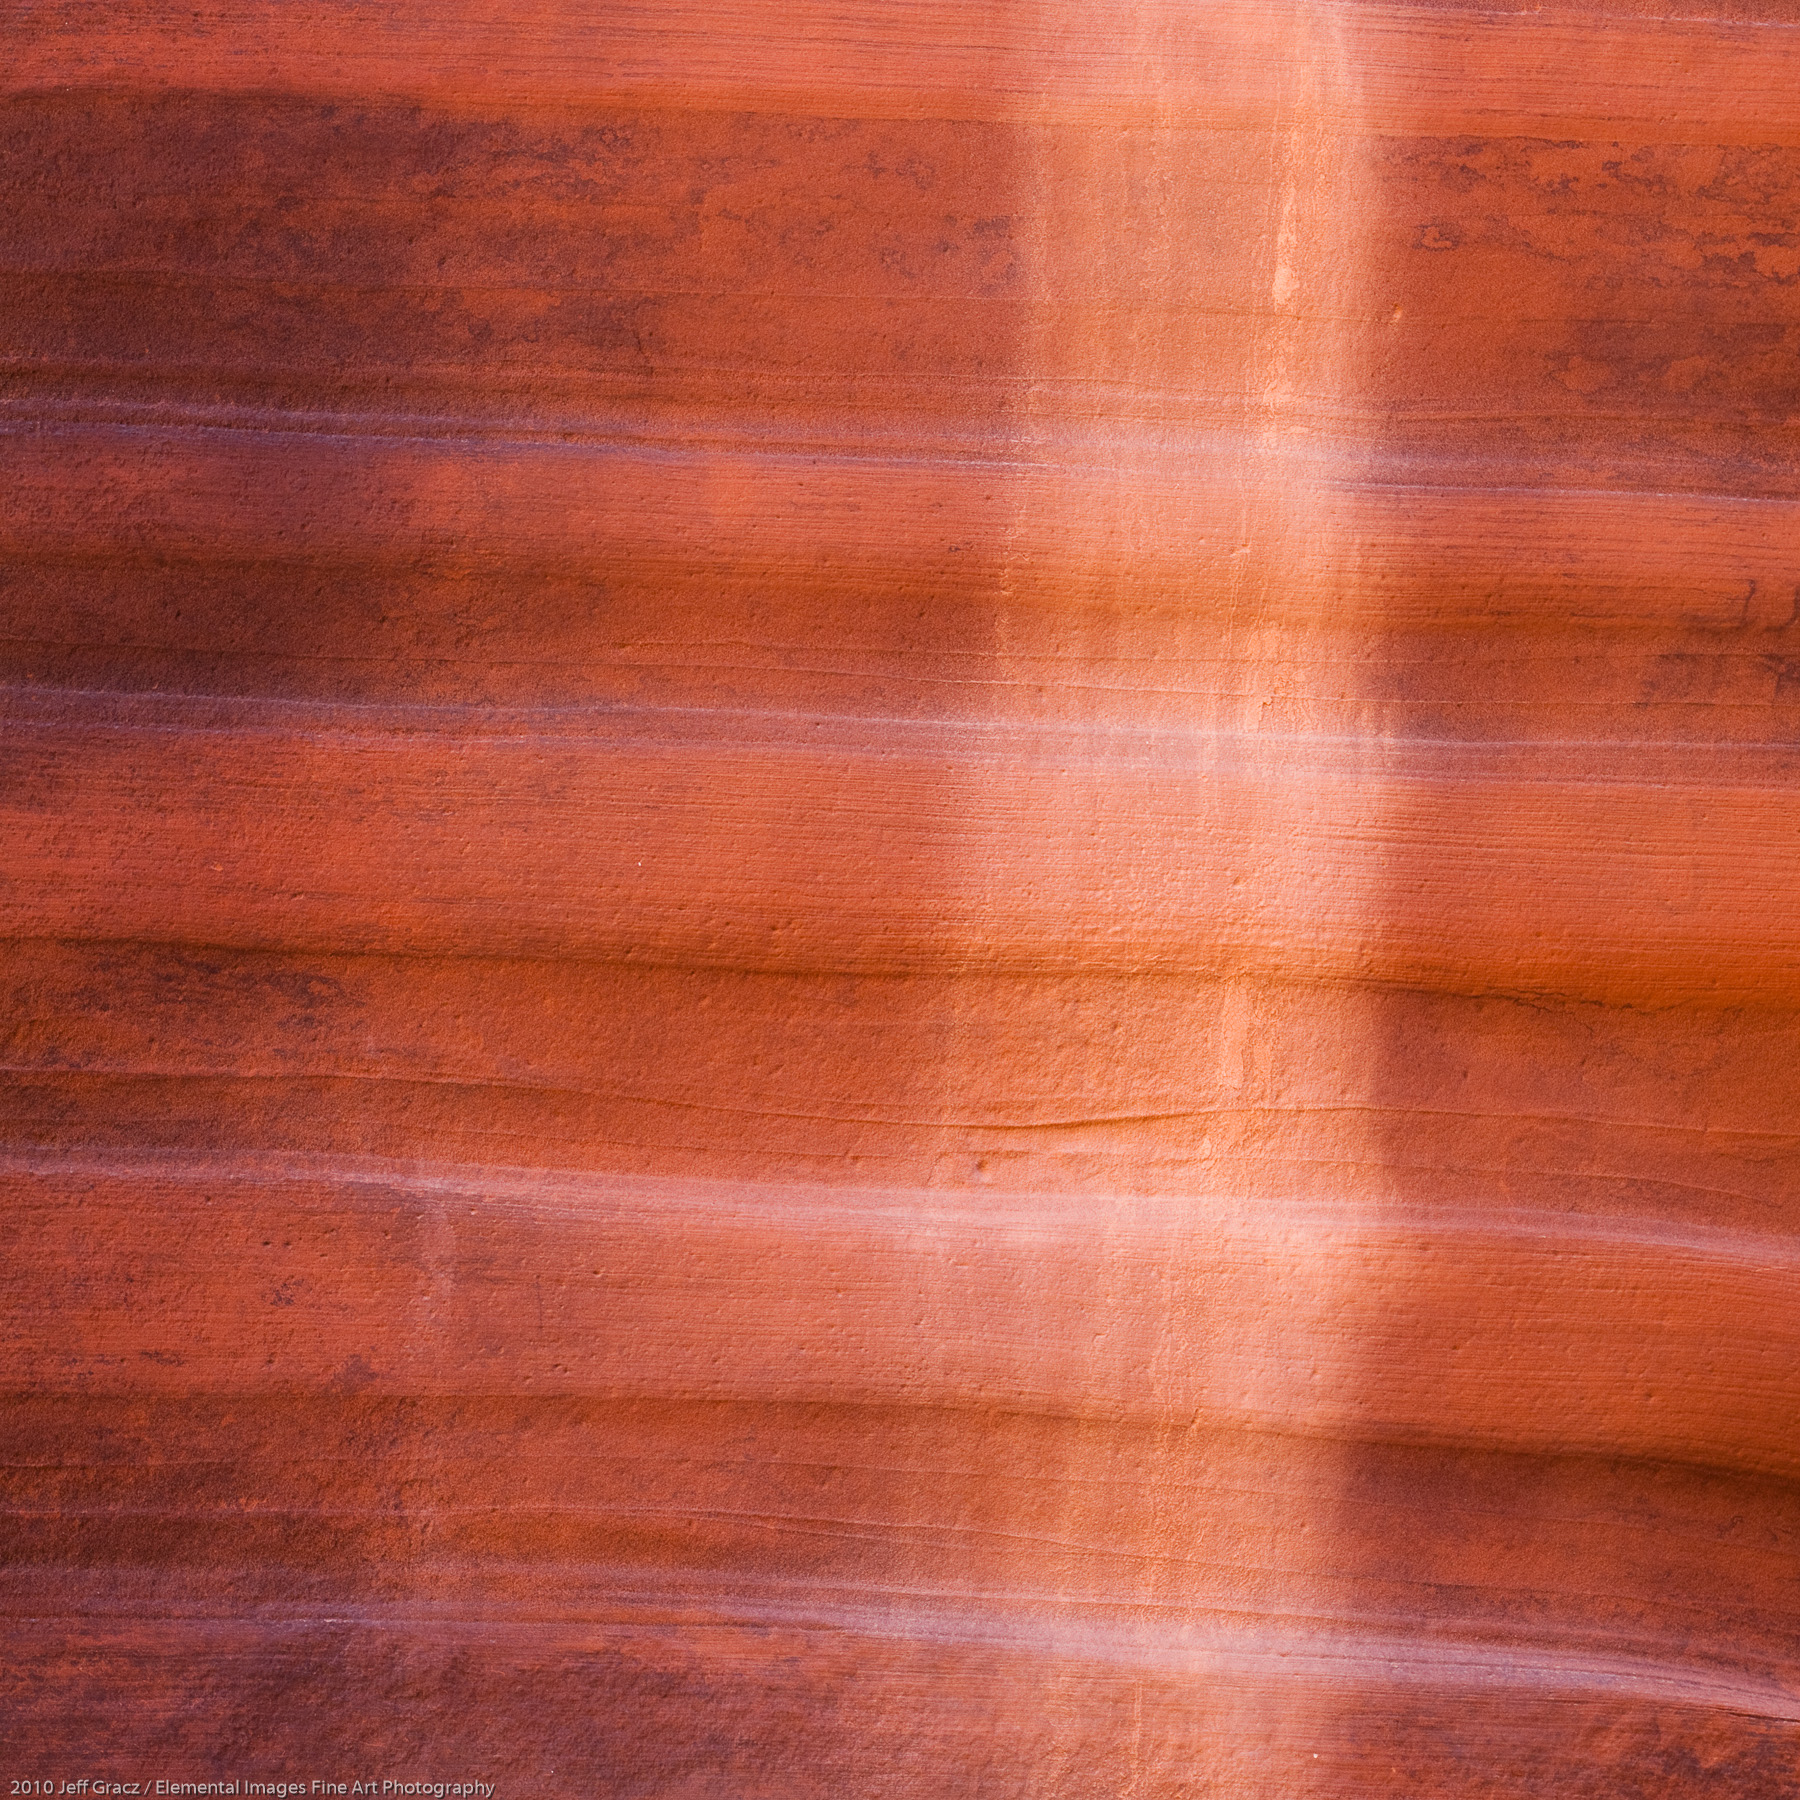 Canyon Wall Abstract I | Paria Canyon / Vermillion Cliffs Wilderness | AZ | USA - © 2010 Jeff Gracz / Elemental Images Fine Art Photography - All Rights Reserved Worldwide